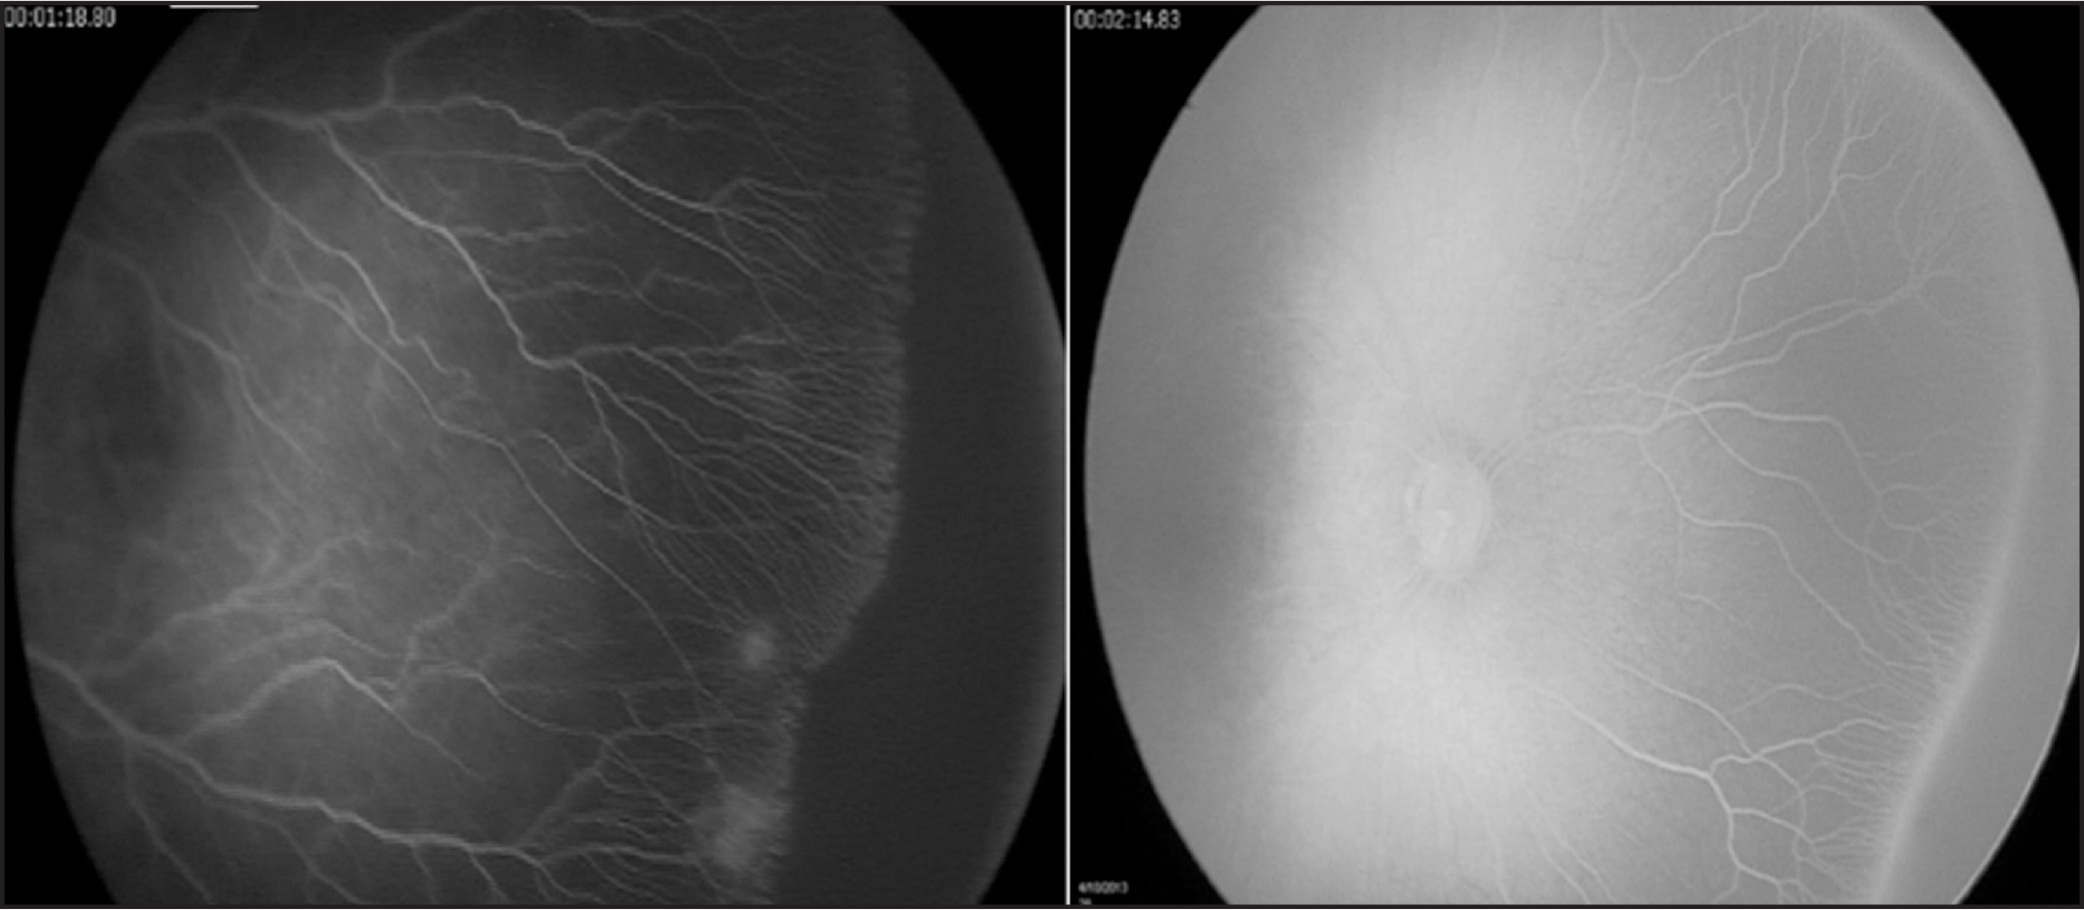 Classic homogenous vascularization pattern present at the ridge seen in two untreated infants with retinopathy of prematurity (gestational age: 37 weeks).